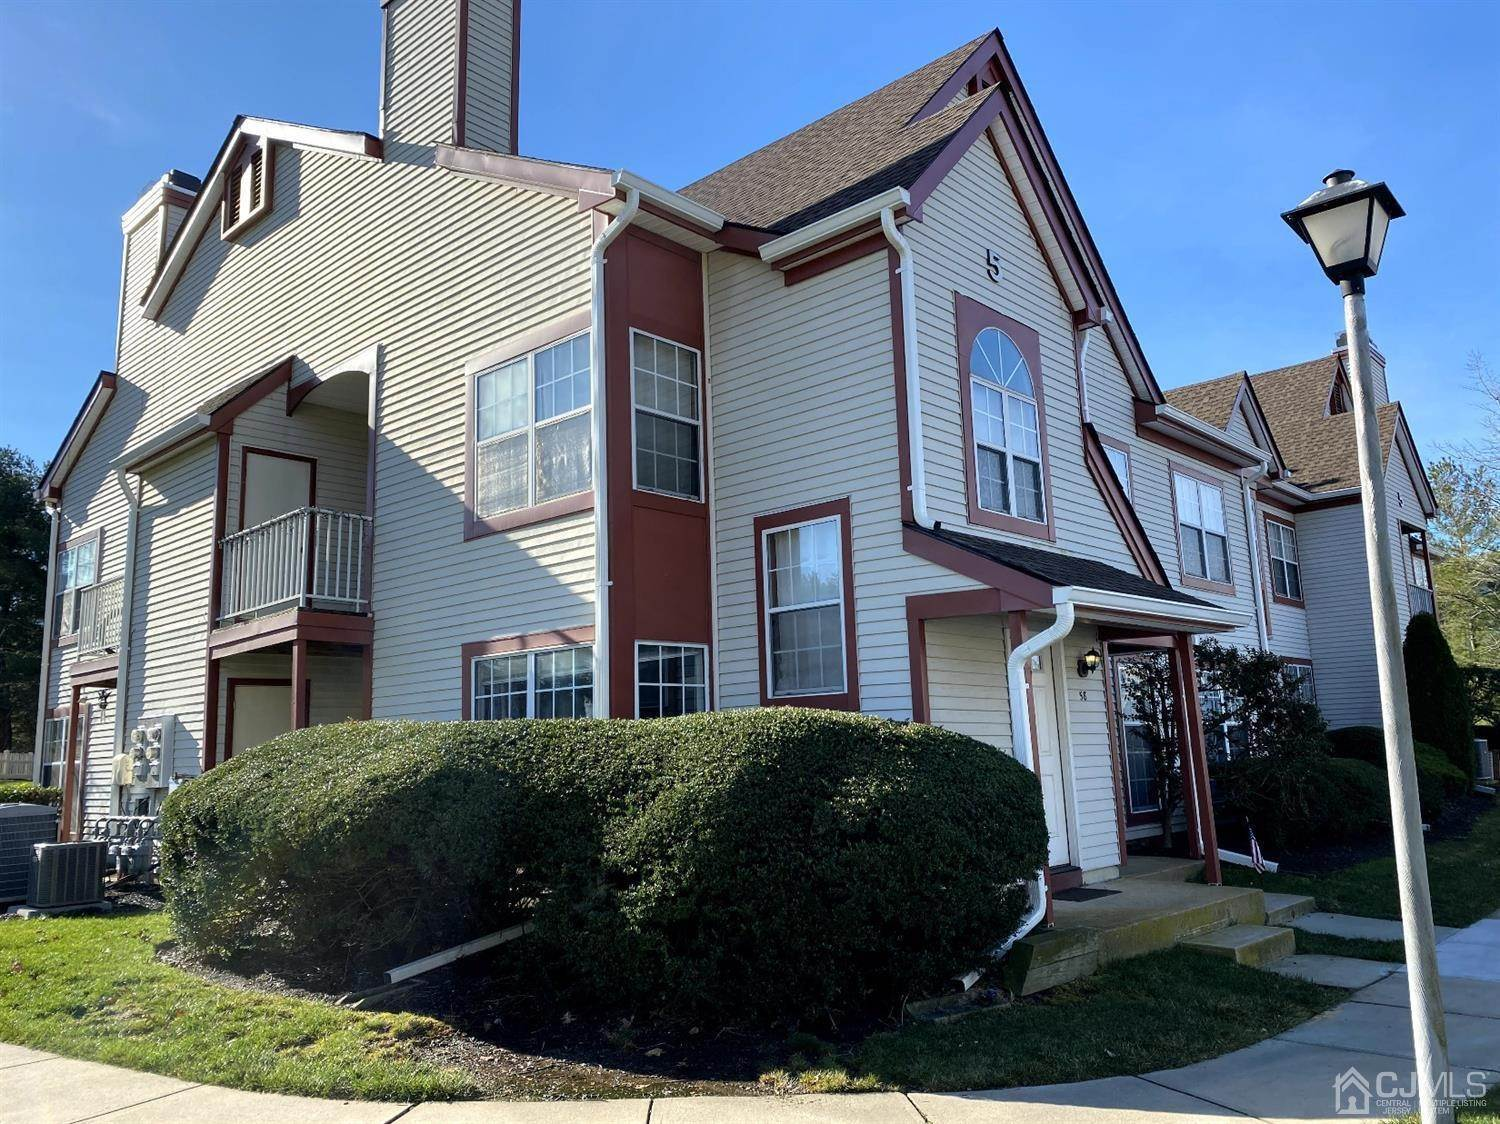 Condo / Townhouse for Sale at Robbinsville, New Jersey 08691 United States